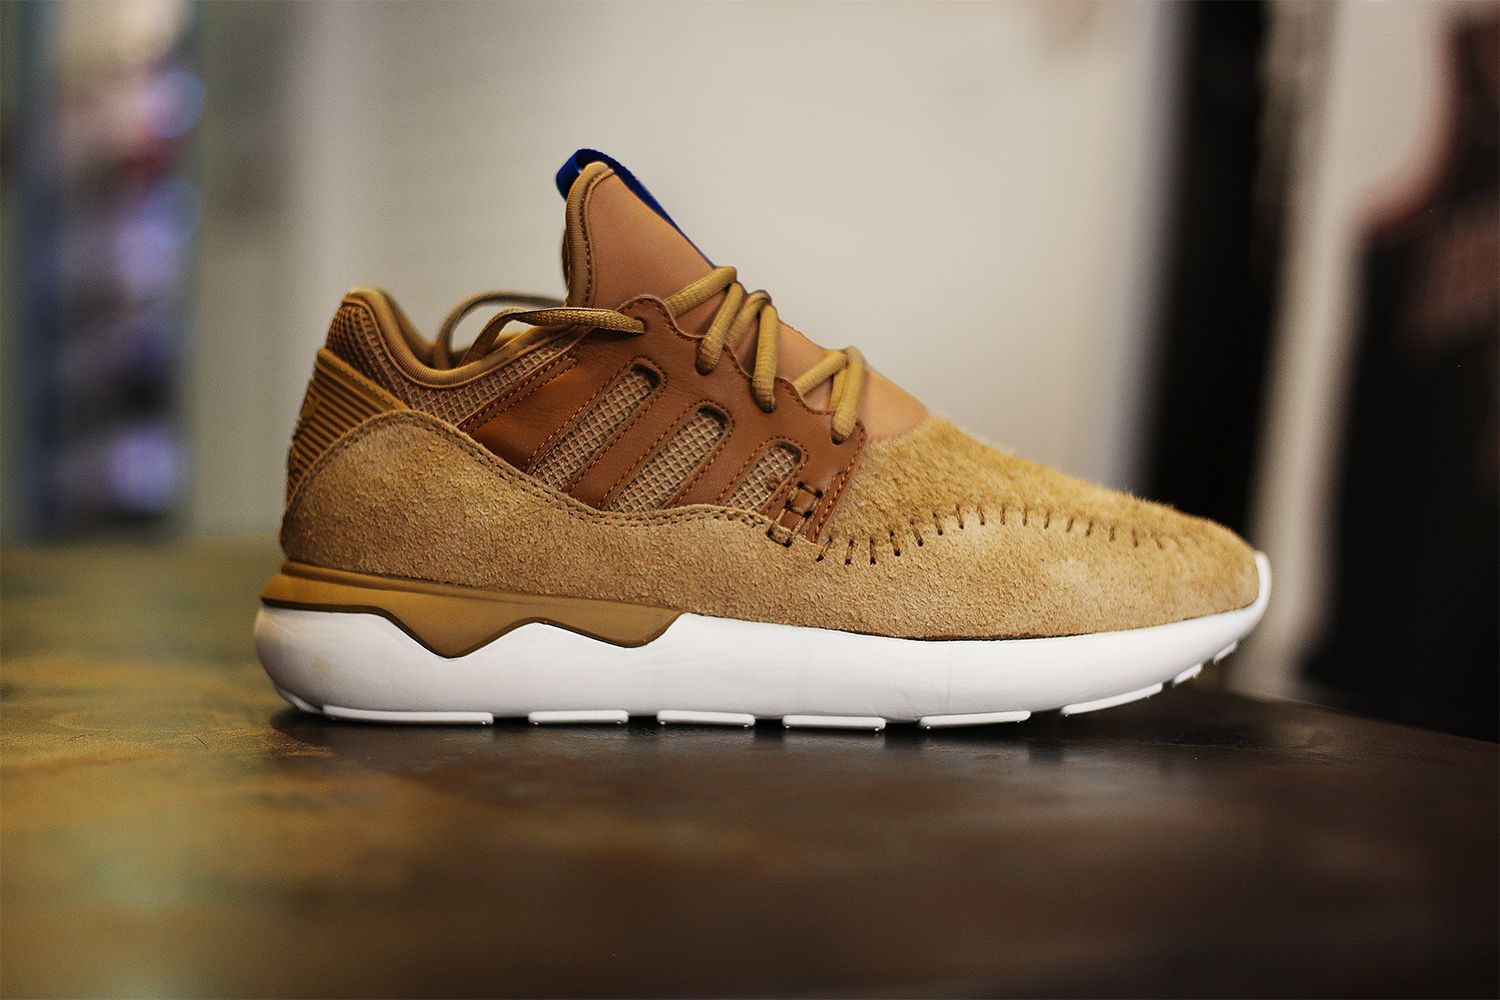 Adidas Tubular Moc Runner Timbers   For HIM    Pinterest   Adidas  Footwear and Trainers